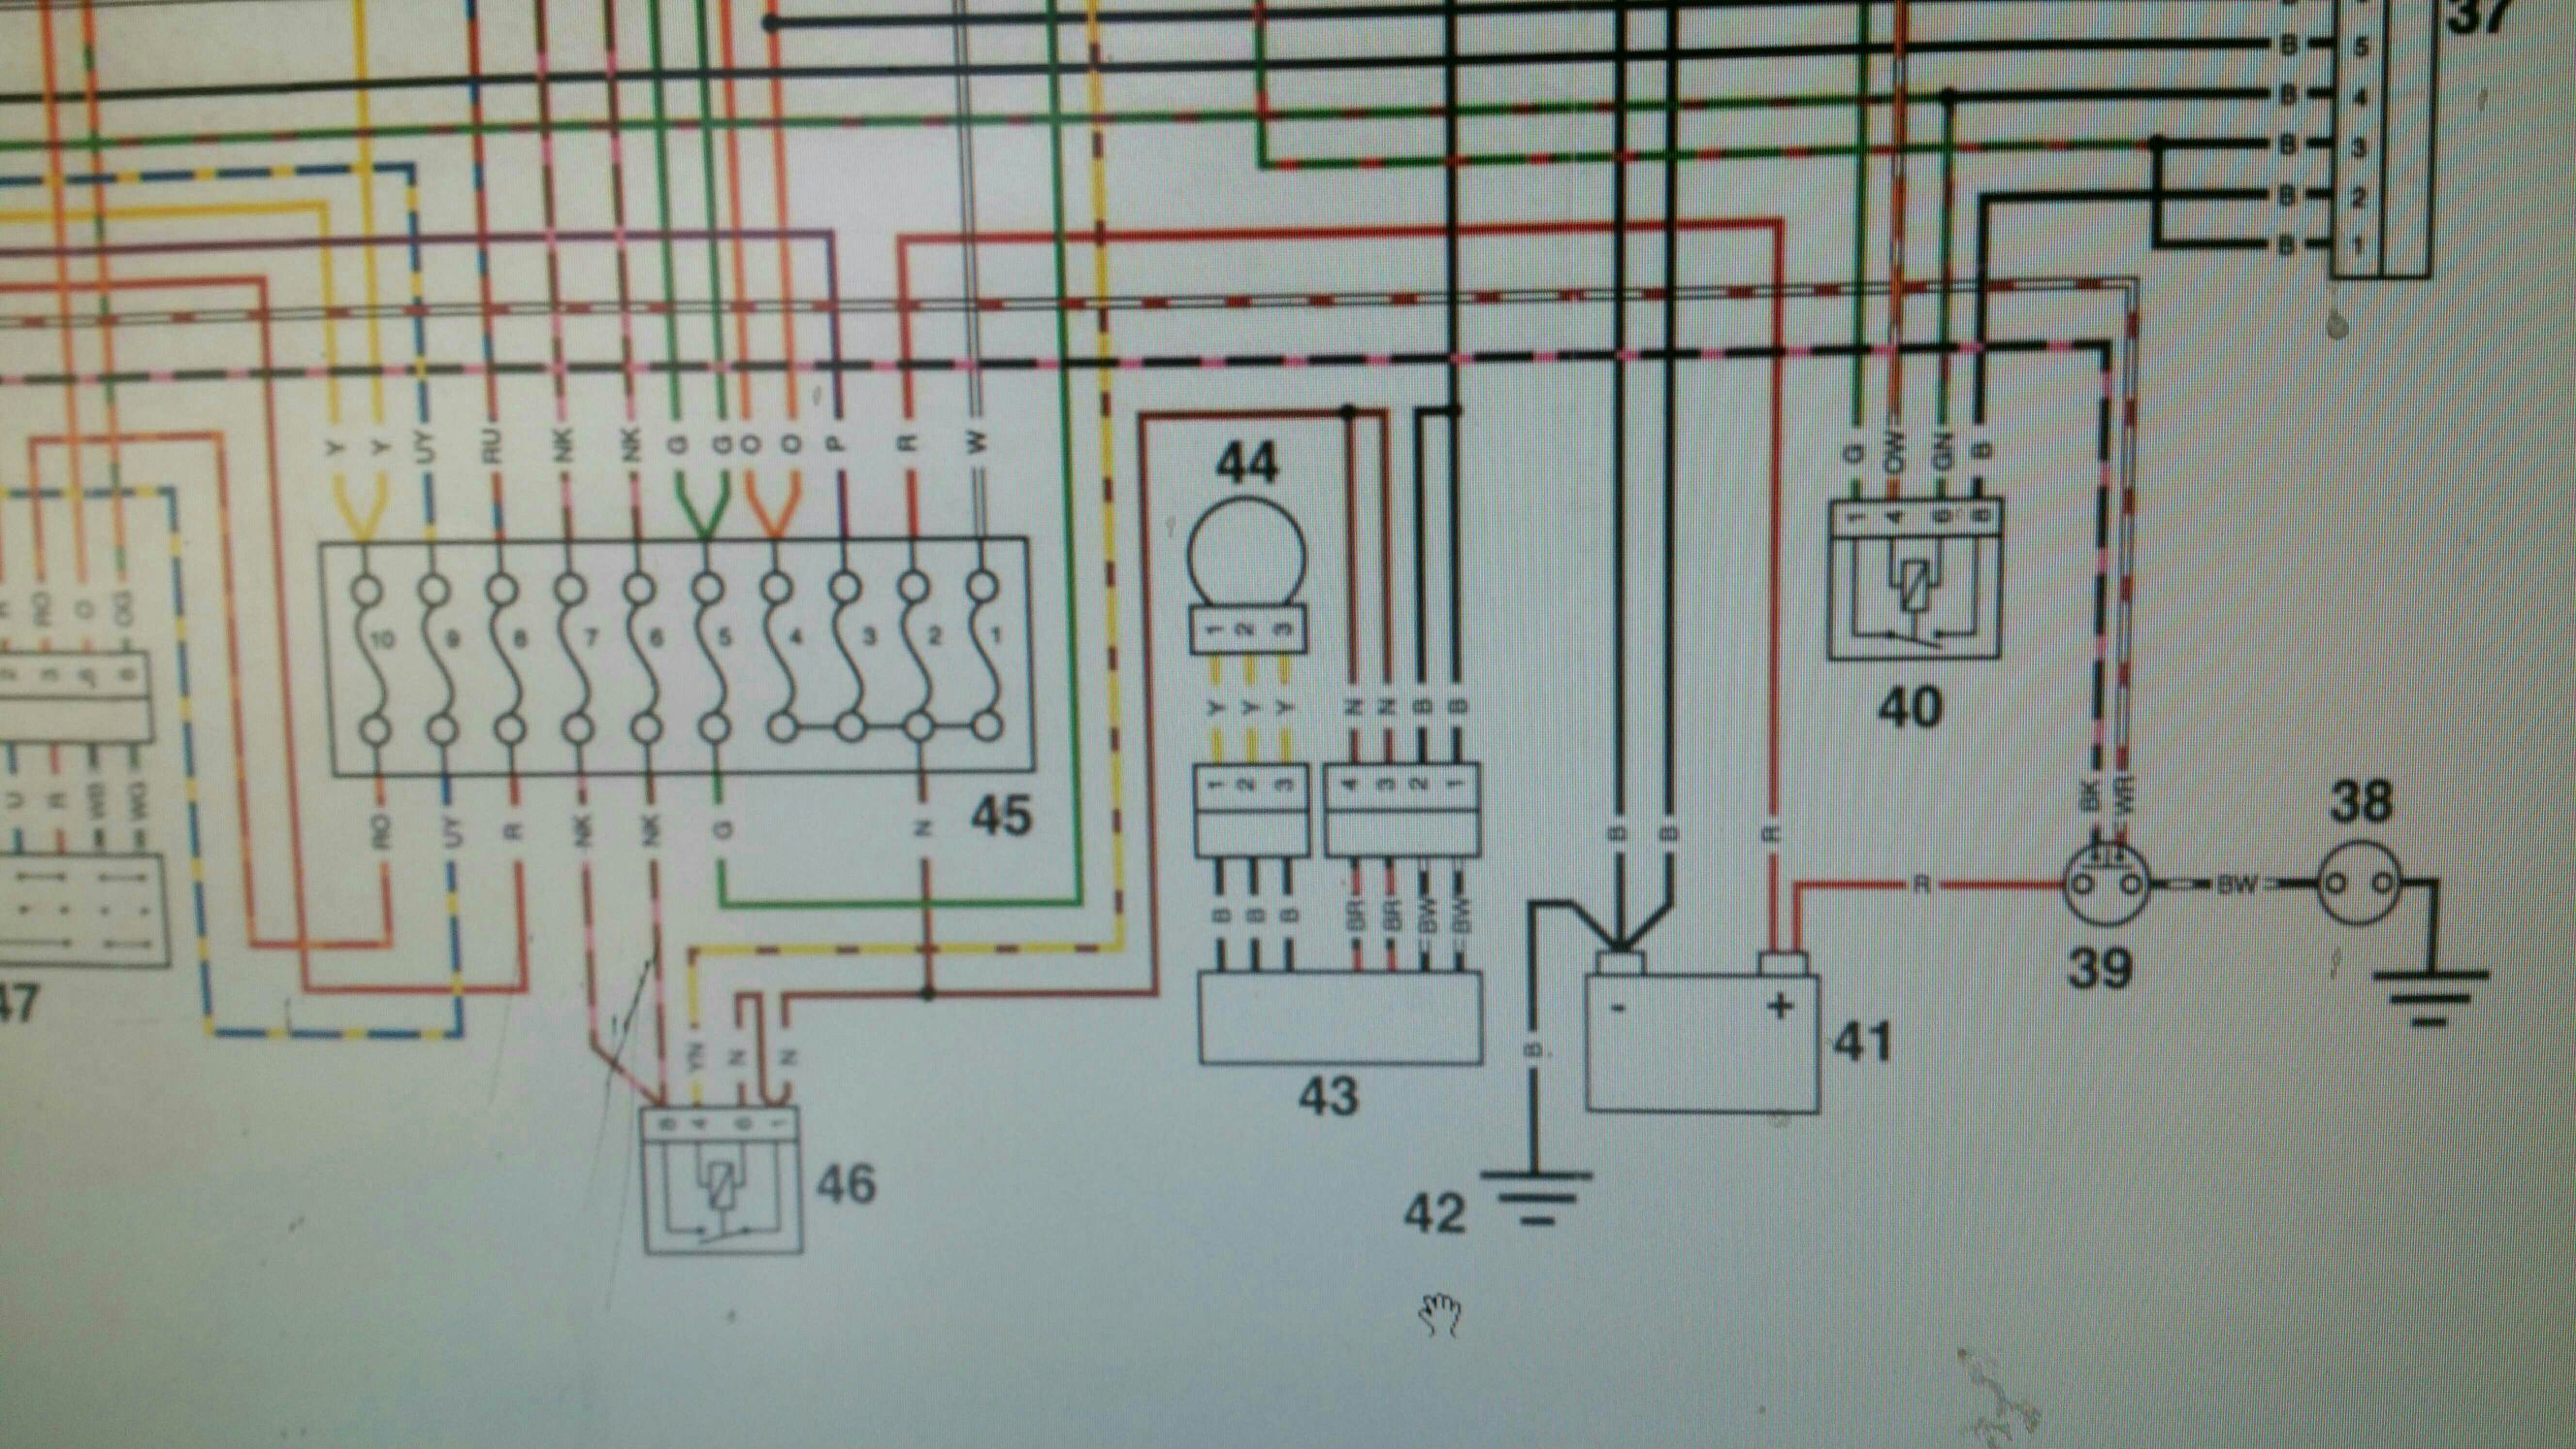 Wiring Diagram Polaris 650 Triple Circuit And Hub Xlt Triumph Tt600 Electrical House U2022 Rh Universalservices Co 1997 600